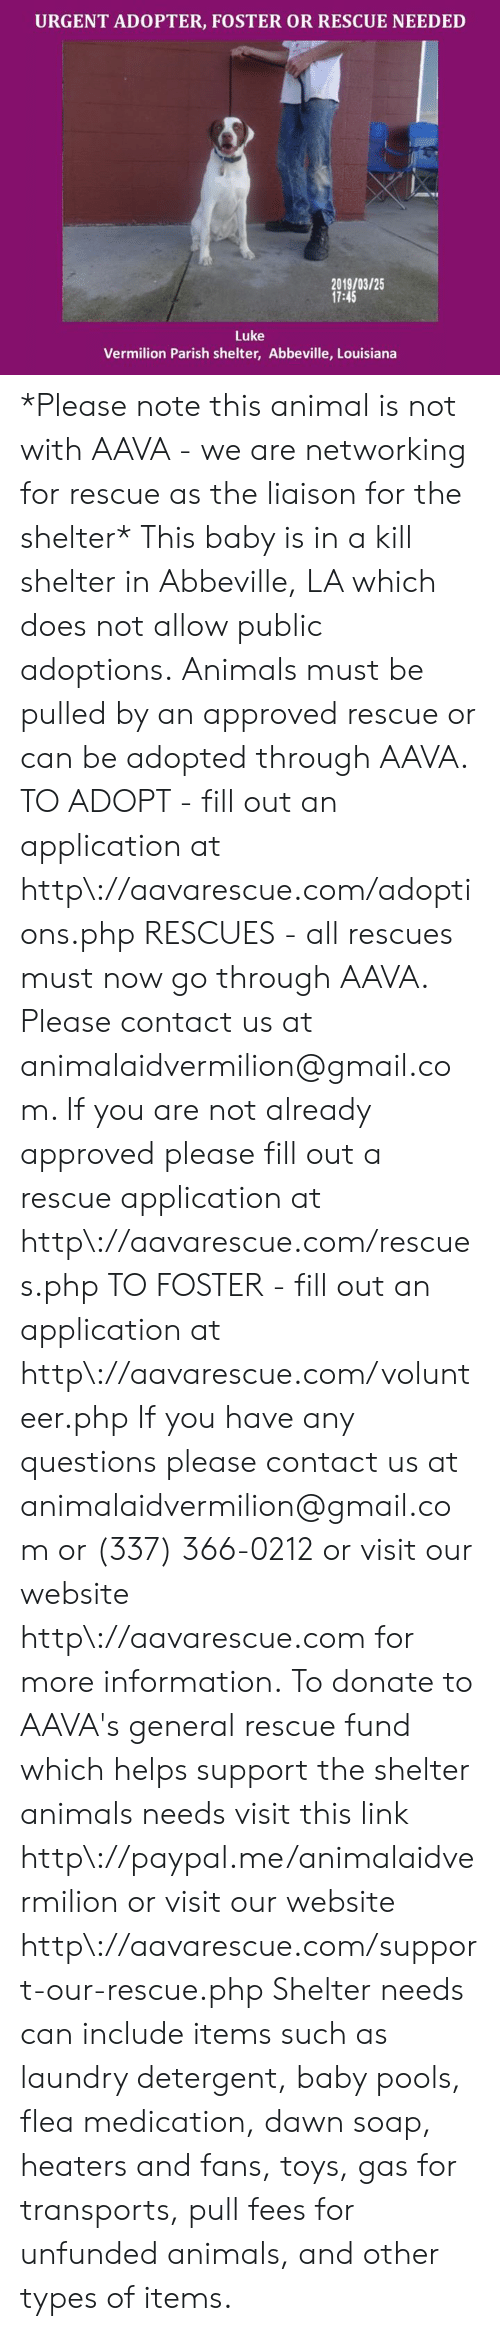 Fill Out: URGENT ADOPTER, FOSTER OR RESCUE NEEDED  91800125  2019/03/25  17:45  Luke  Vermilion Parish shelter, Abbeville, Louisiana *Please note this animal is not with AAVA - we are networking for rescue as the liaison for the shelter* This baby is in a kill shelter in Abbeville, LA which does not allow public adoptions. Animals must be pulled by an approved rescue or can be adopted through AAVA.  TO ADOPT - fill out an application at http\://aavarescue.com/adoptions.php  RESCUES - all rescues must now go through AAVA. Please contact us at animalaidvermilion@gmail.com. If you are not already approved please fill out a rescue application at http\://aavarescue.com/rescues.php  TO FOSTER - fill out an application at http\://aavarescue.com/volunteer.php  If you have any questions please contact us at animalaidvermilion@gmail.com or (337) 366-0212 or visit our website http\://aavarescue.com for more information.  To donate to AAVA's general rescue fund which helps support the shelter animals needs visit this link http\://paypal.me/animalaidvermilion or visit our website http\://aavarescue.com/support-our-rescue.php Shelter needs can include items such as laundry detergent, baby pools, flea medication, dawn soap, heaters and fans, toys, gas for transports, pull fees for unfunded animals, and other types of items.